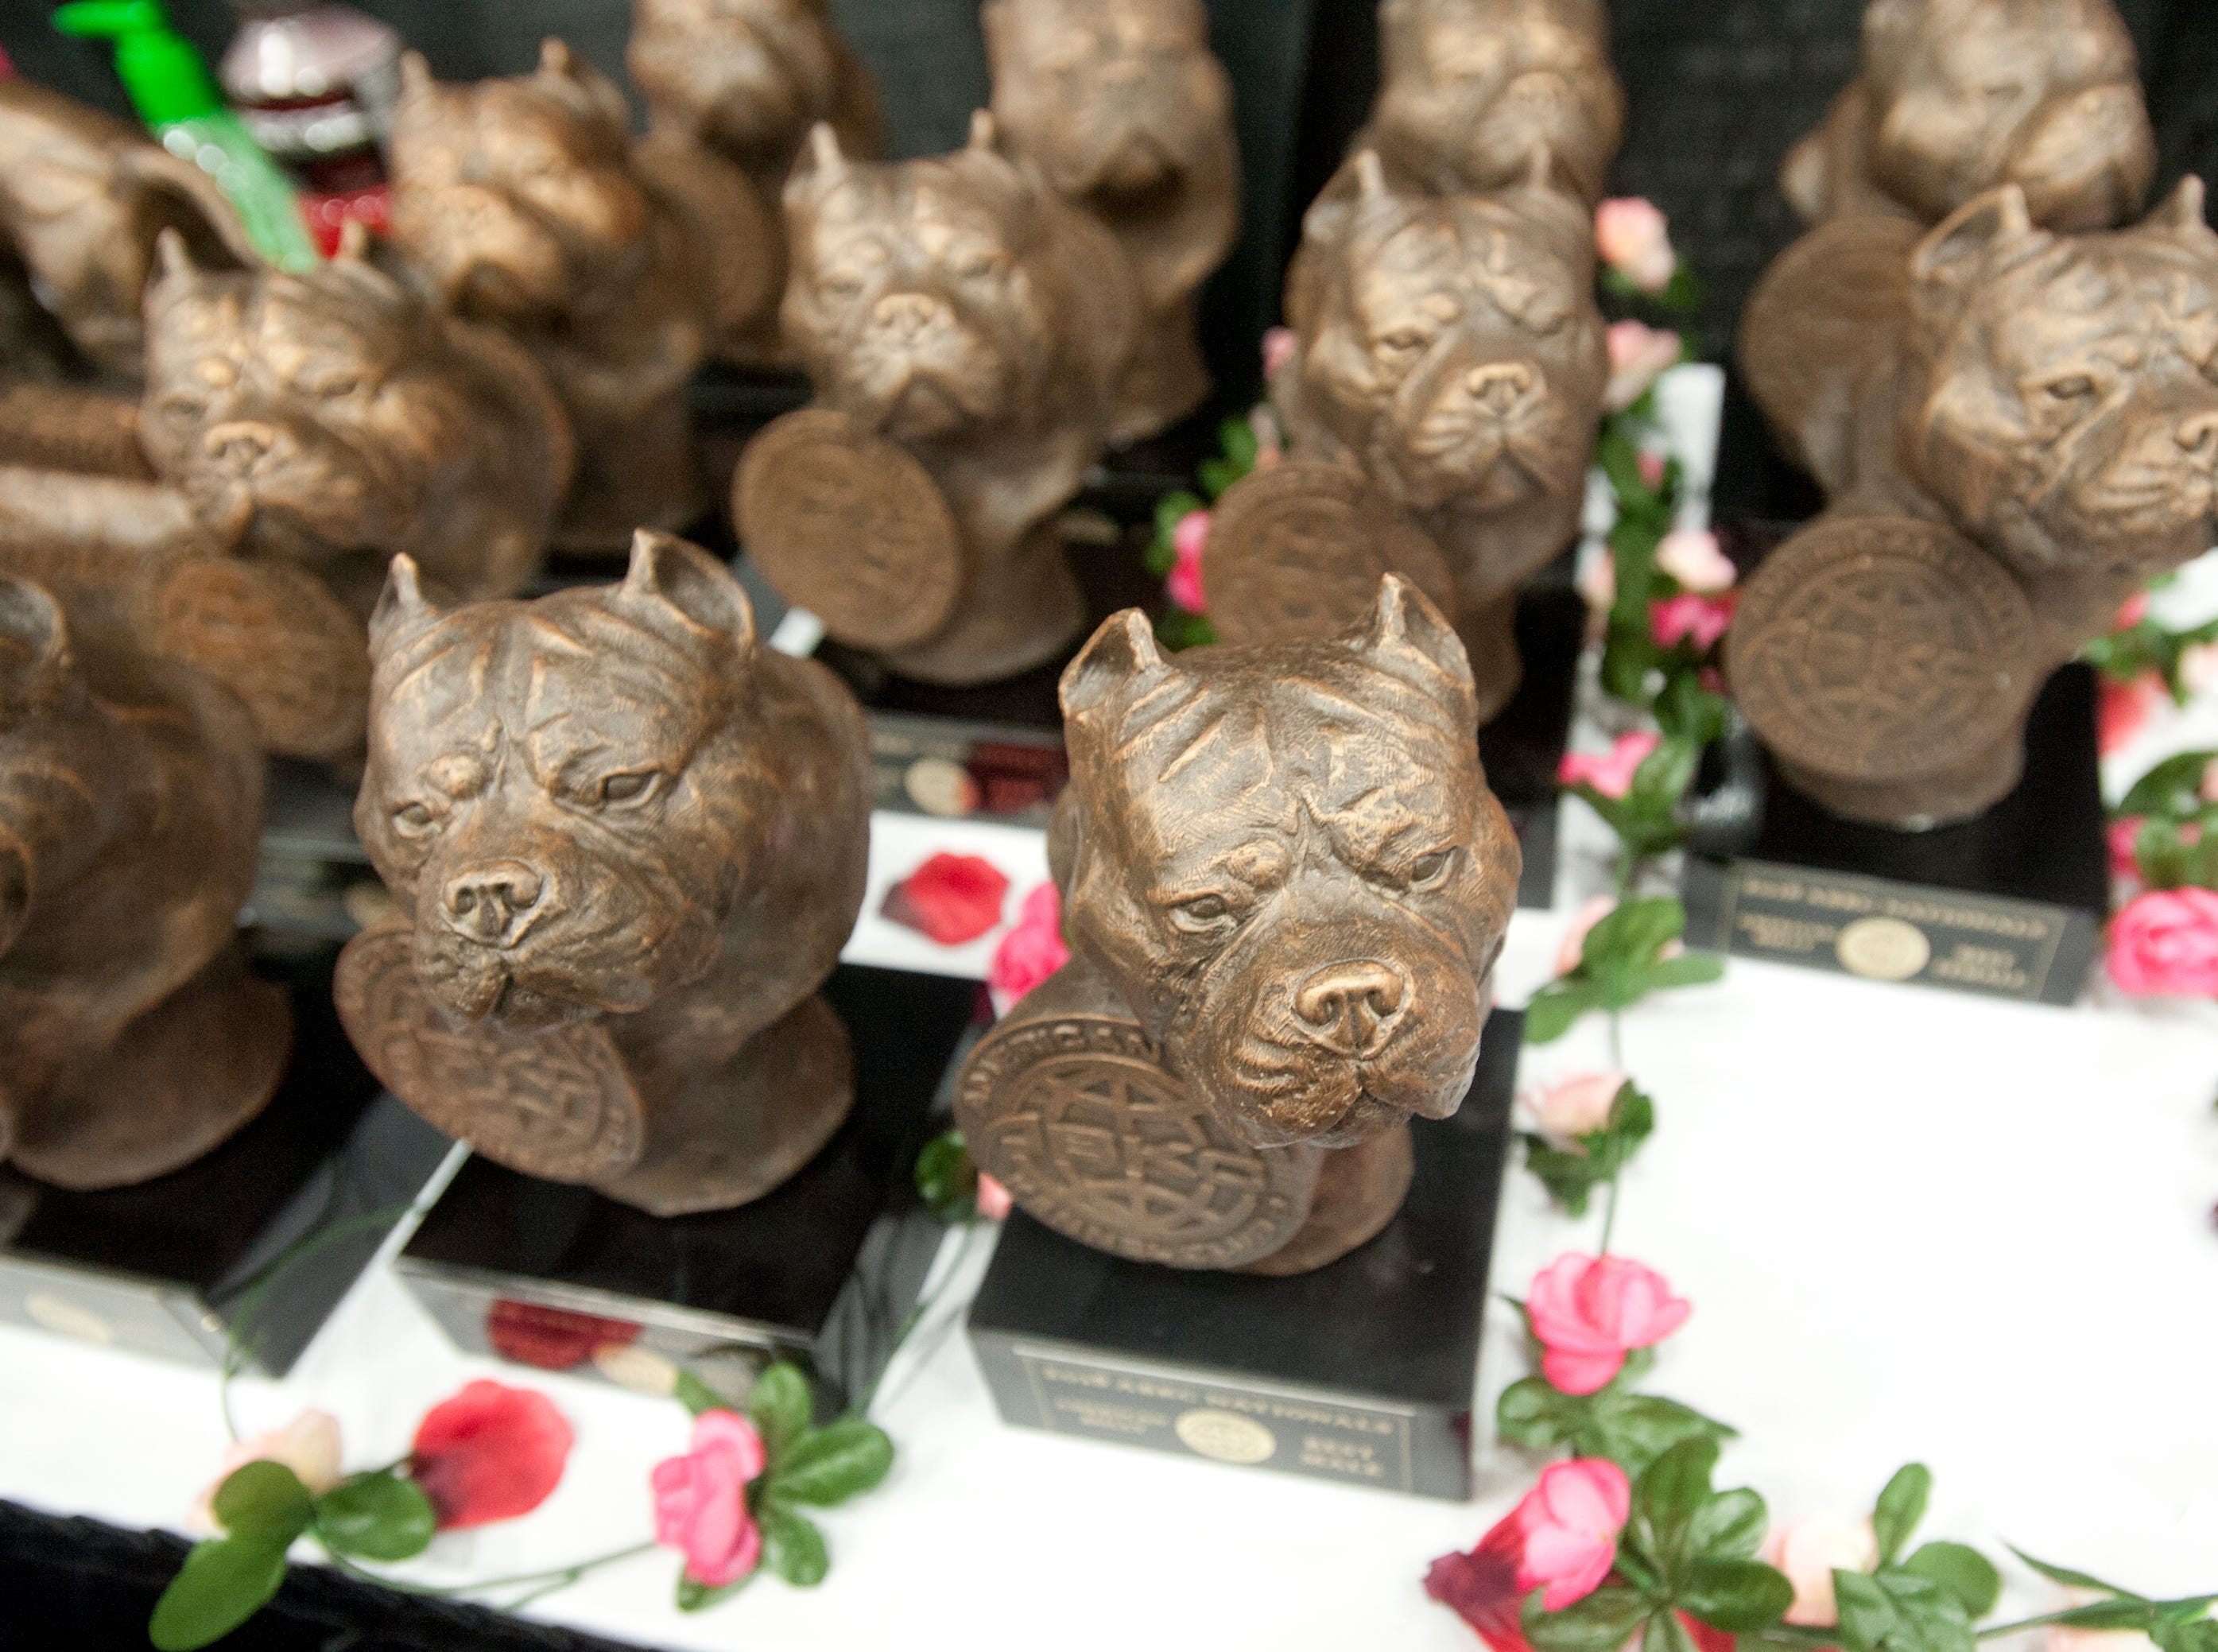 Detail of bronze bulldog awards at the 2018 American Bully Kennel Club's 12th annual confirmation event at the Kentucky Convention Center in Louisville.November 10, 2018